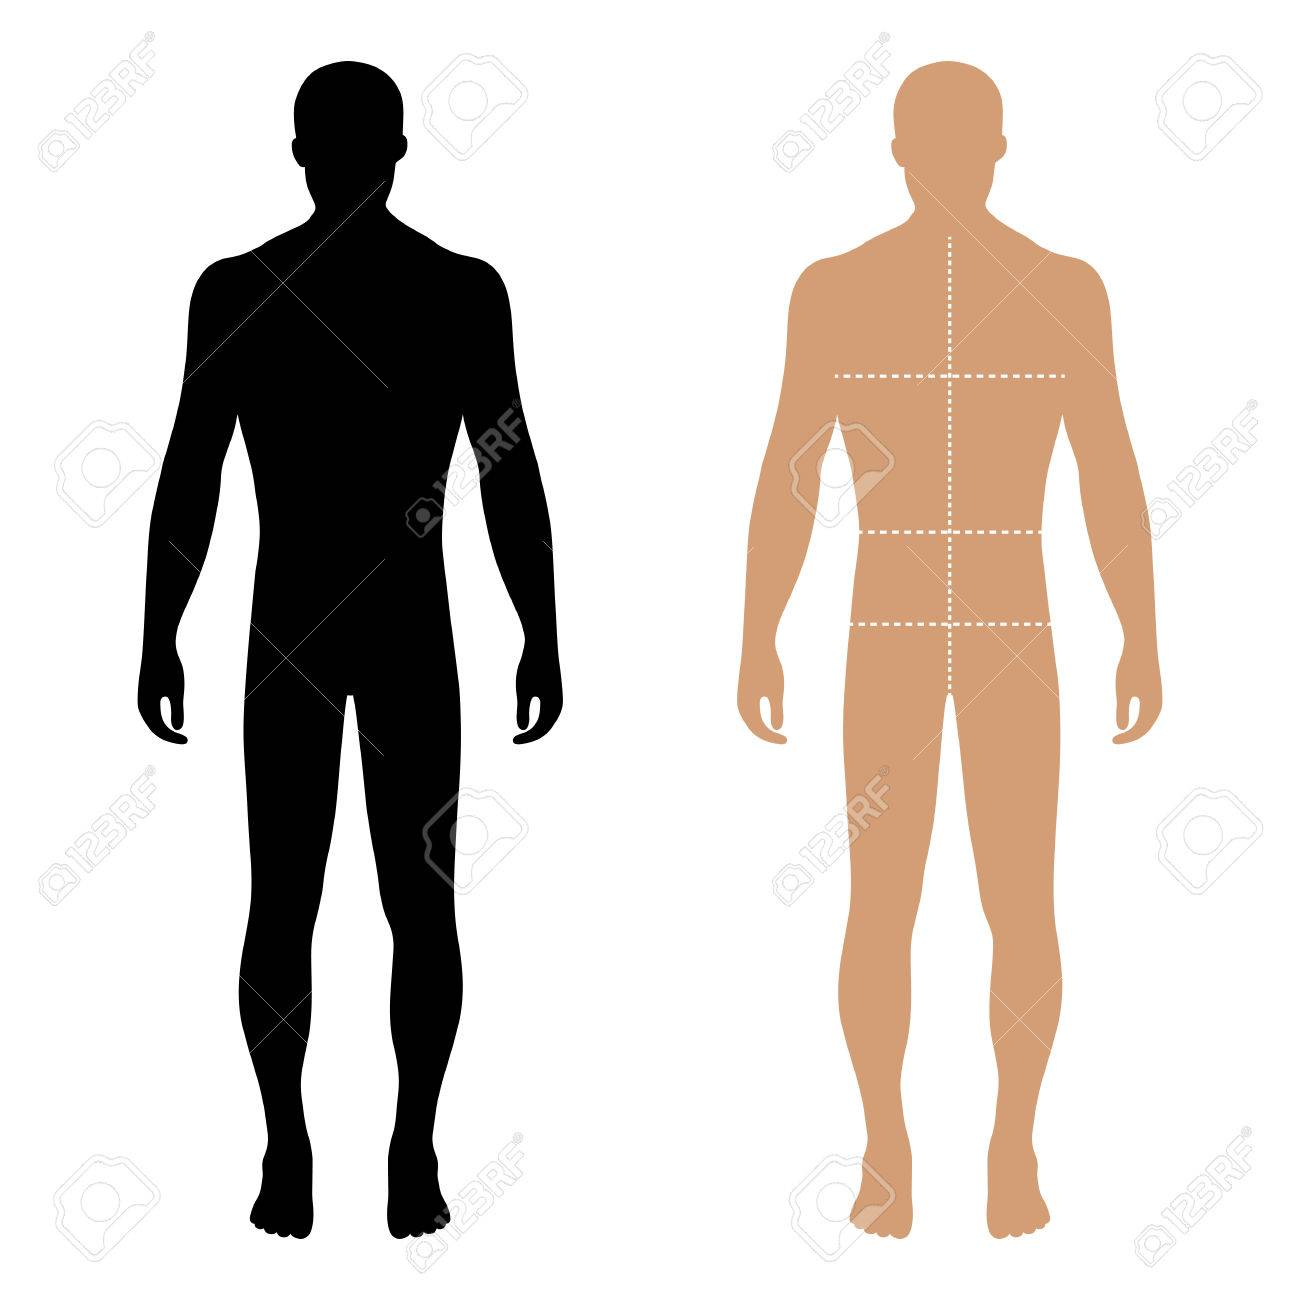 Fashion man full length solid template figure silhouette with marked body's sizes lines (front view), vector illustration isolated on white background - 61969842